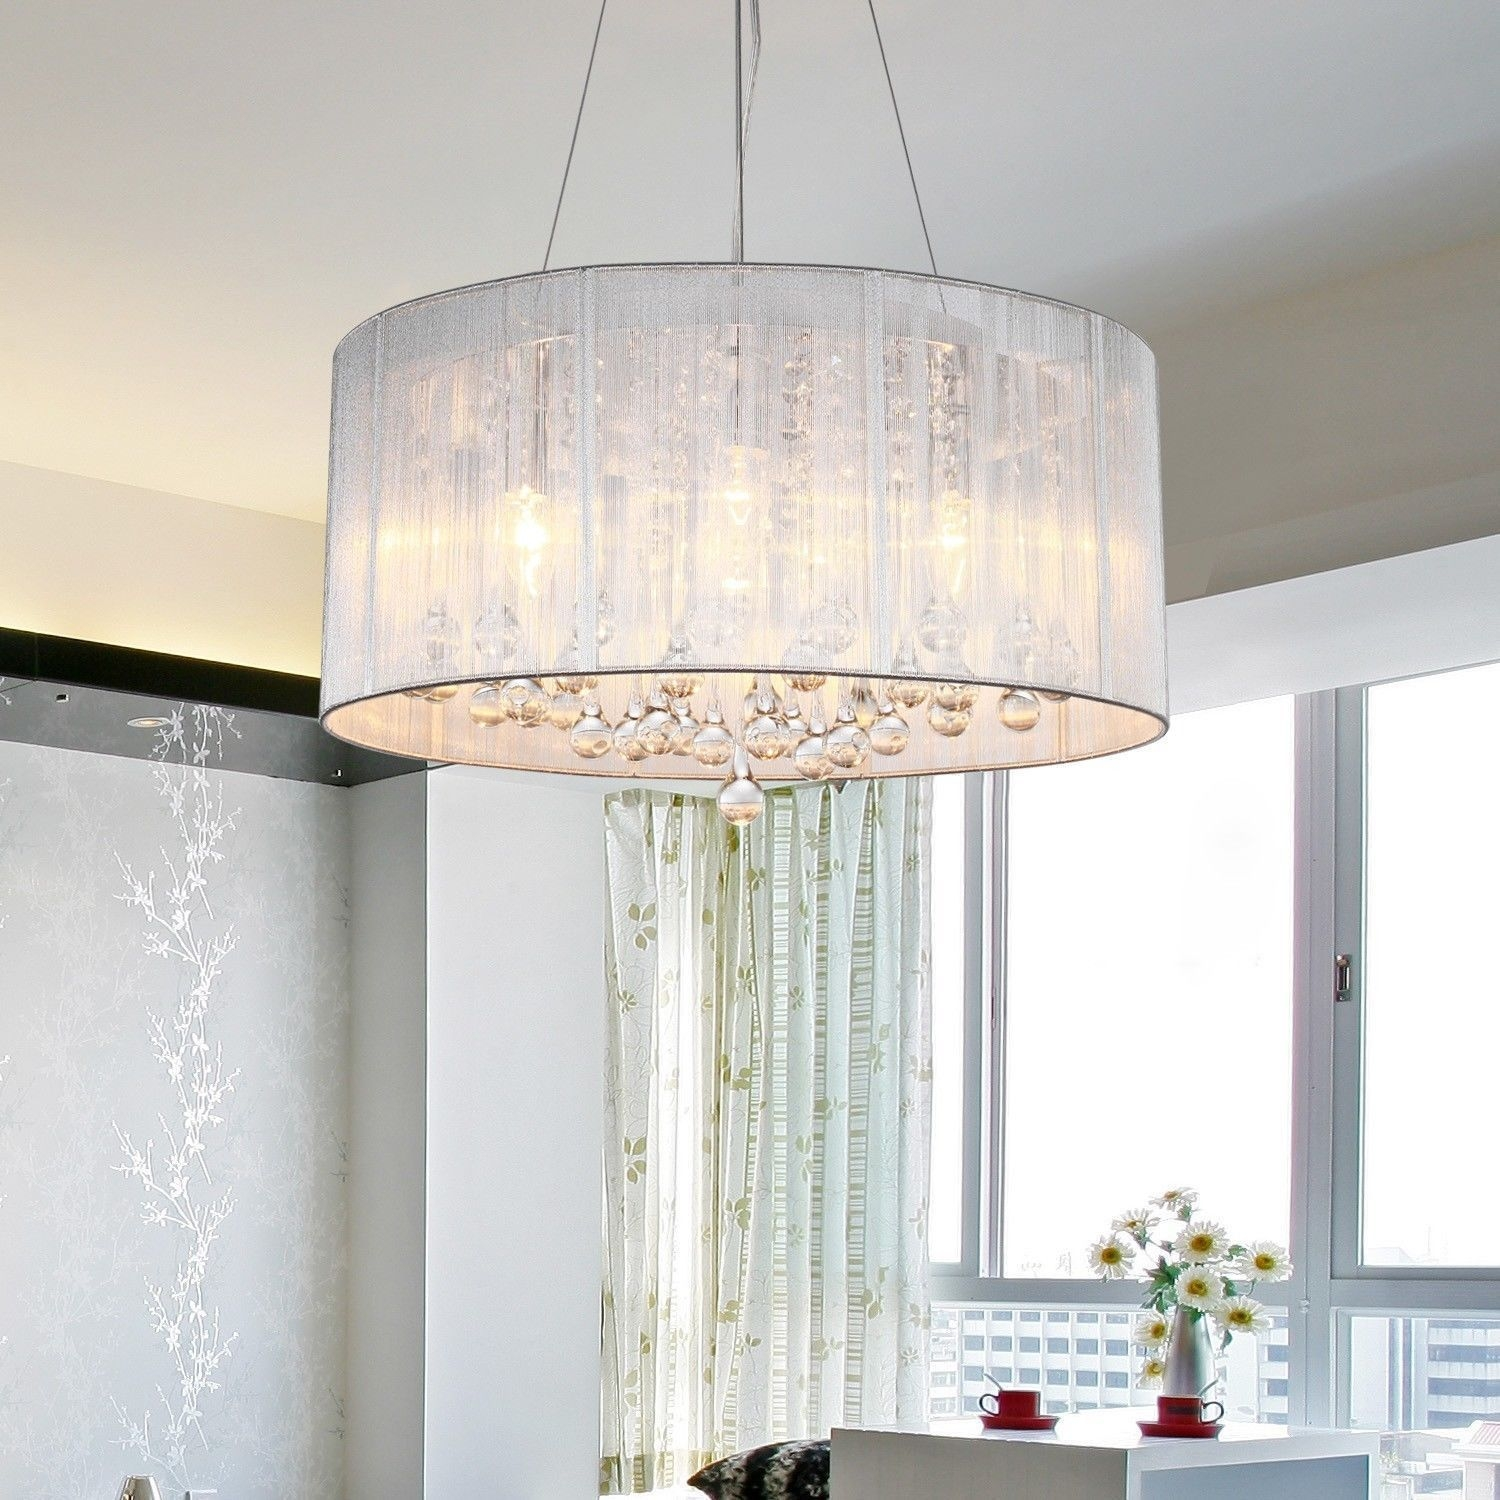 Very Awesome Lamp Shade Chandelier Best Home Decor Inspirations For Lampshades For Chandeliers (View 2 of 25)